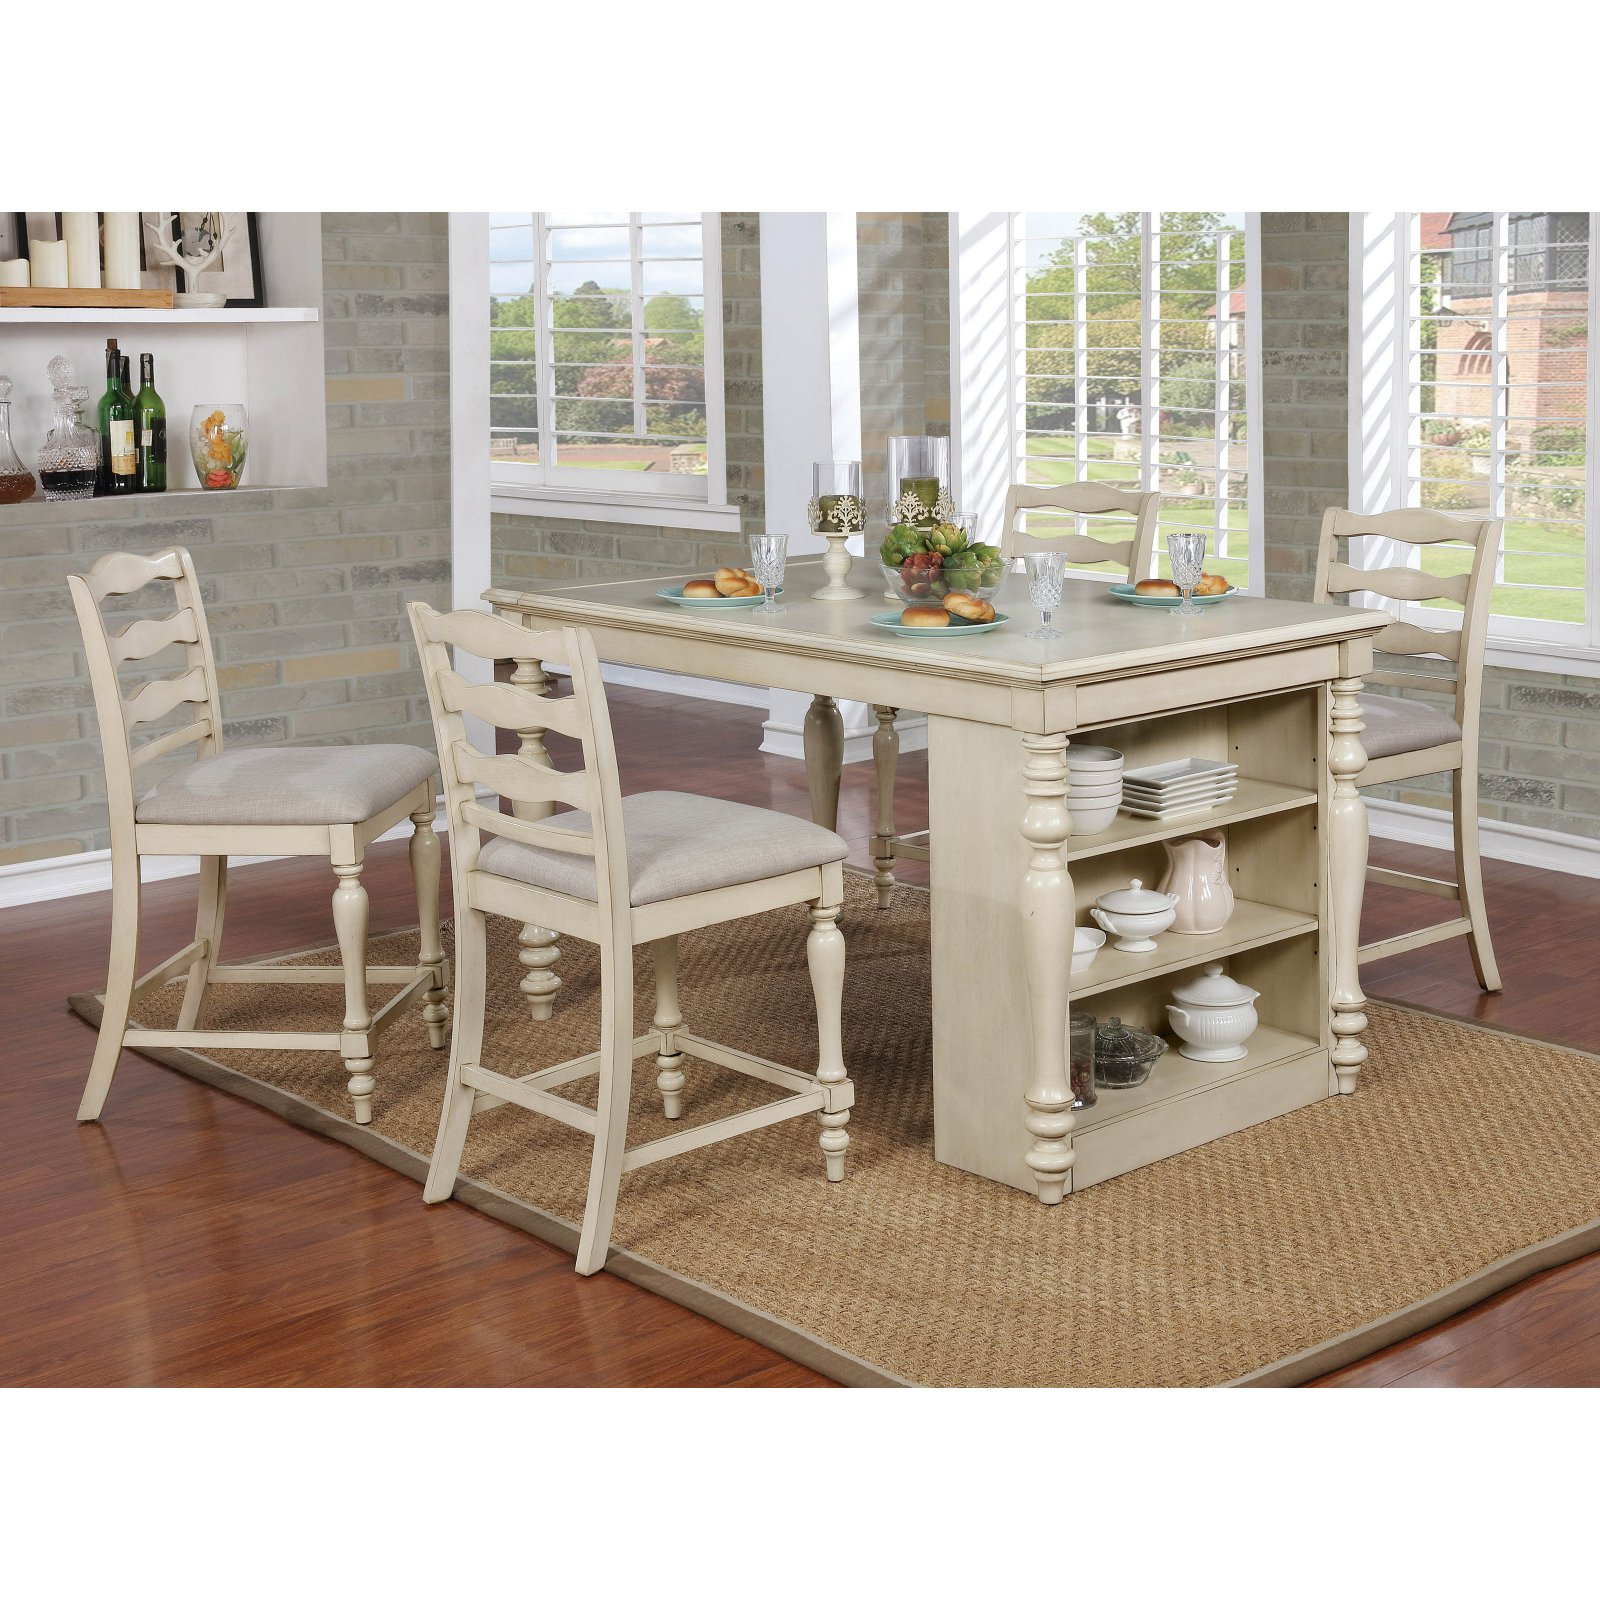 counter height chairs for kitchen island furniture of america wilson 5 piece rustic counter height kitchen island table and chairs set 3501